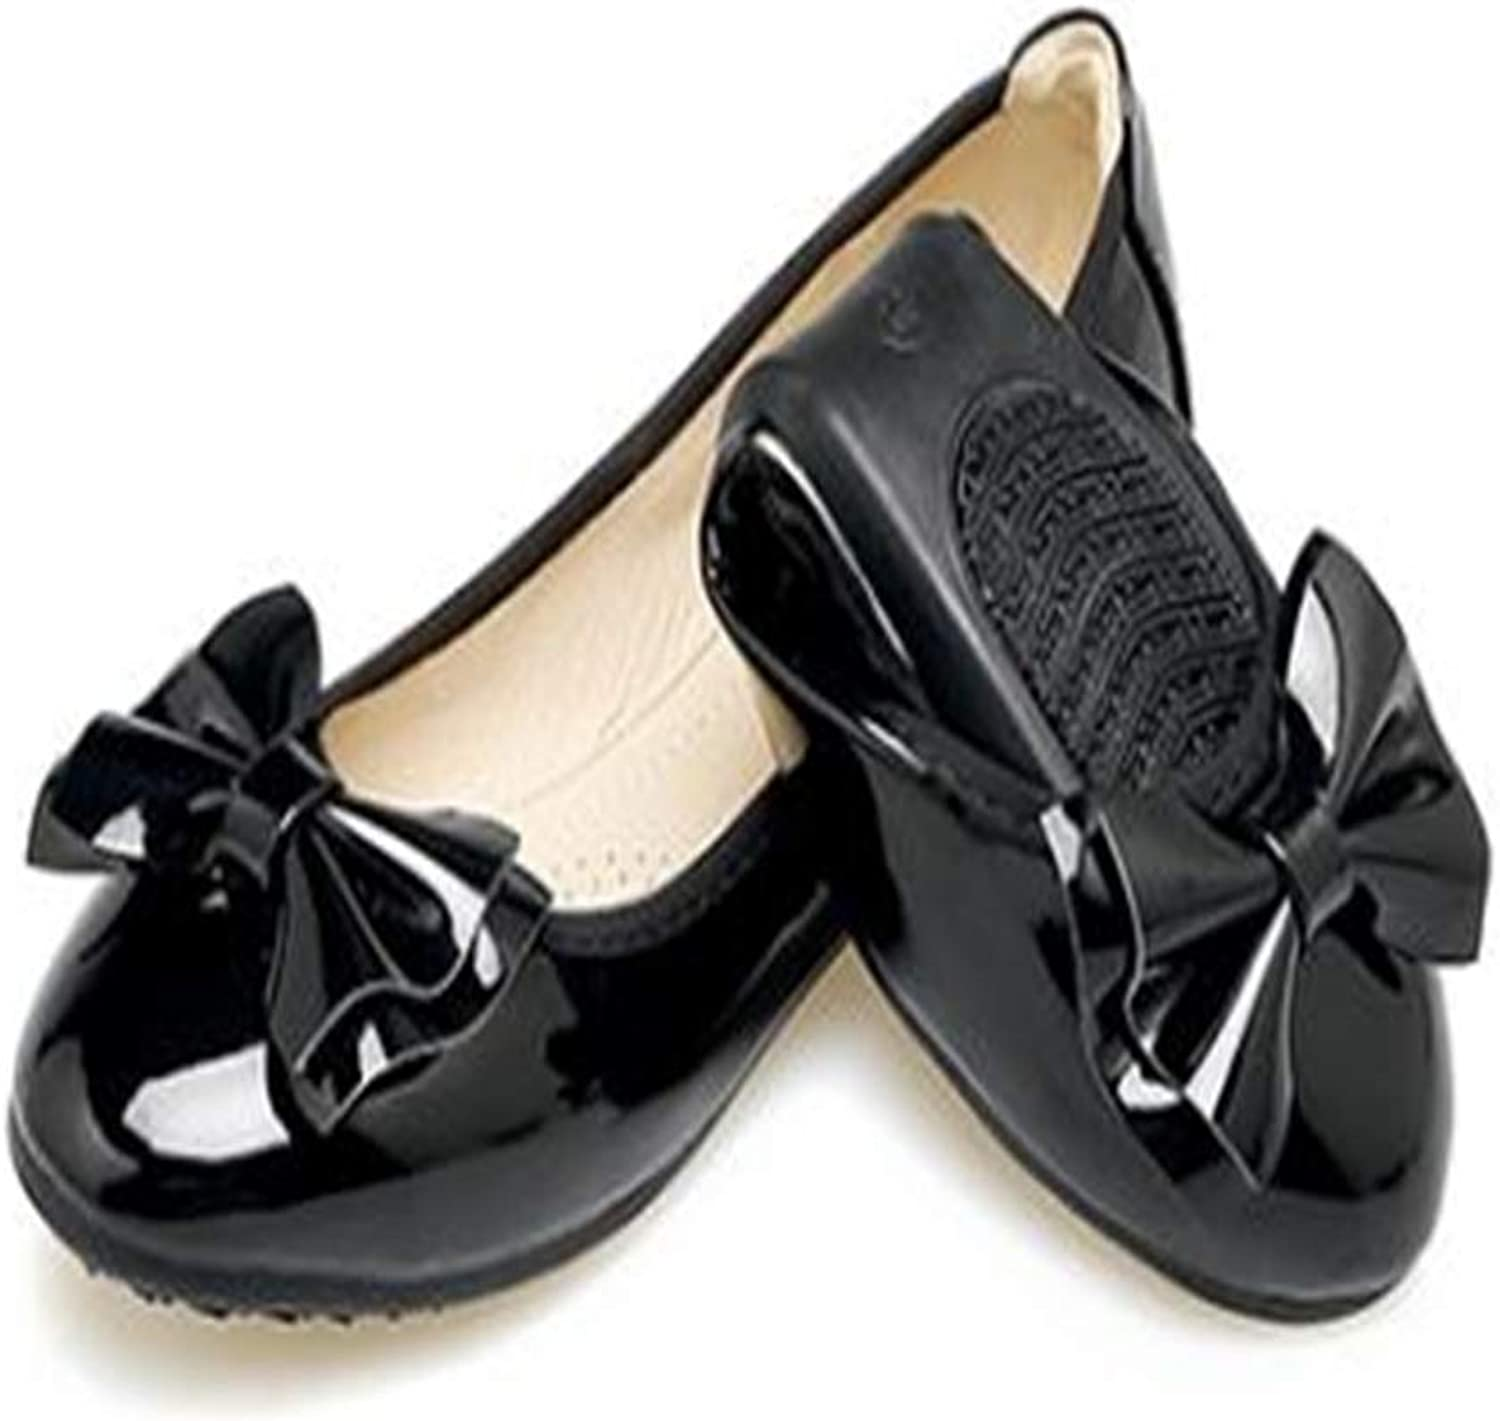 Quality.A Women's Sweet Flat shoes peas shoes Casual shoes Egg roll shoes